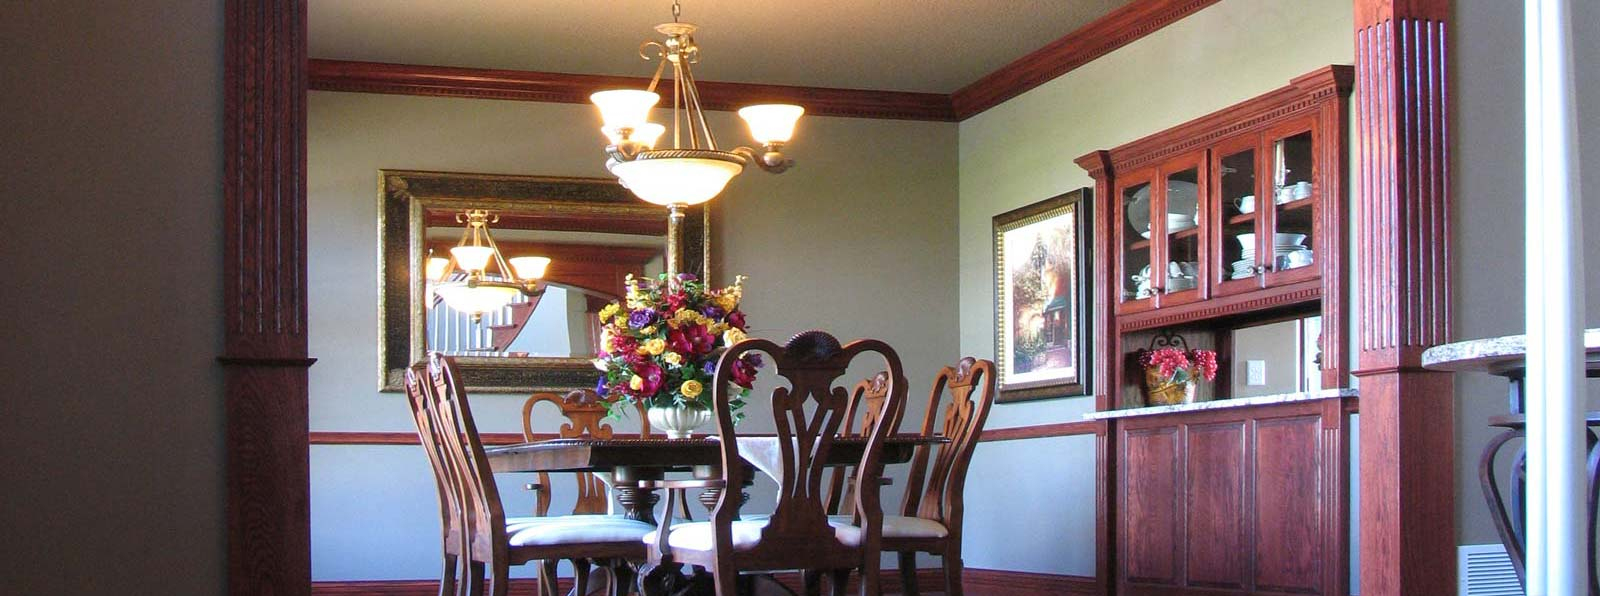 Elegant, arched cherry door frame looking into a formal dining room